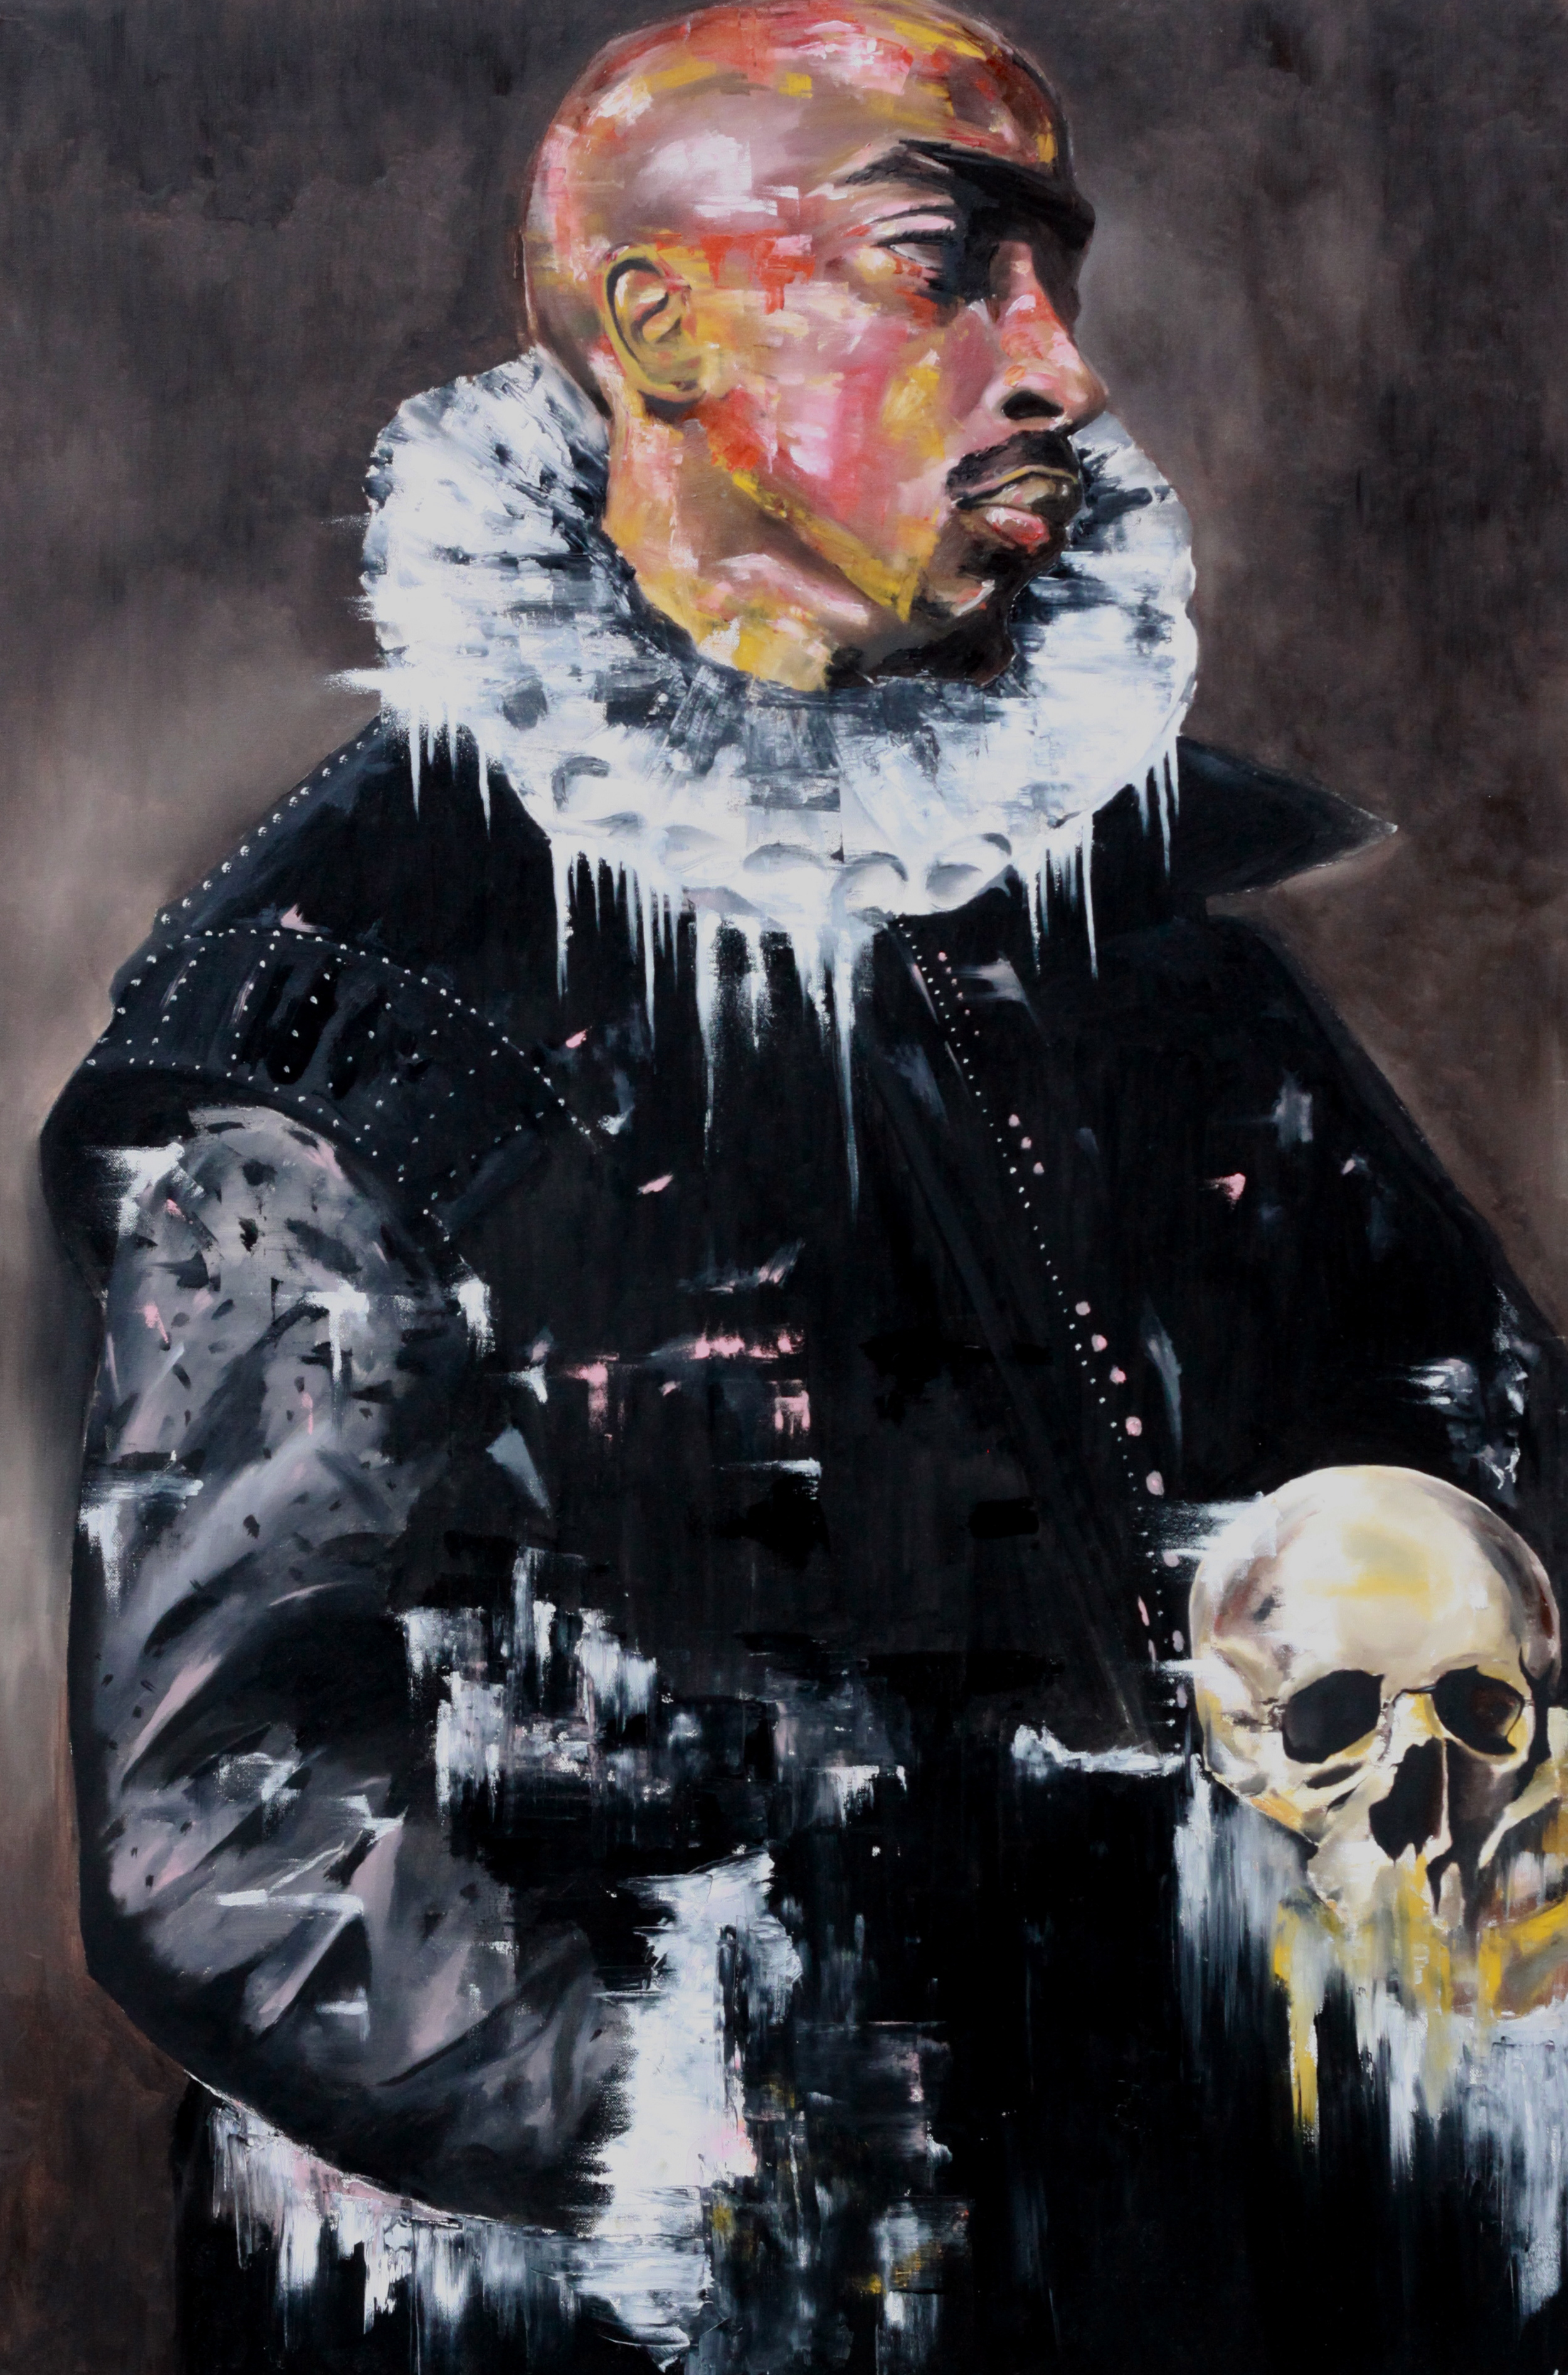 PAC WITH A SKULL